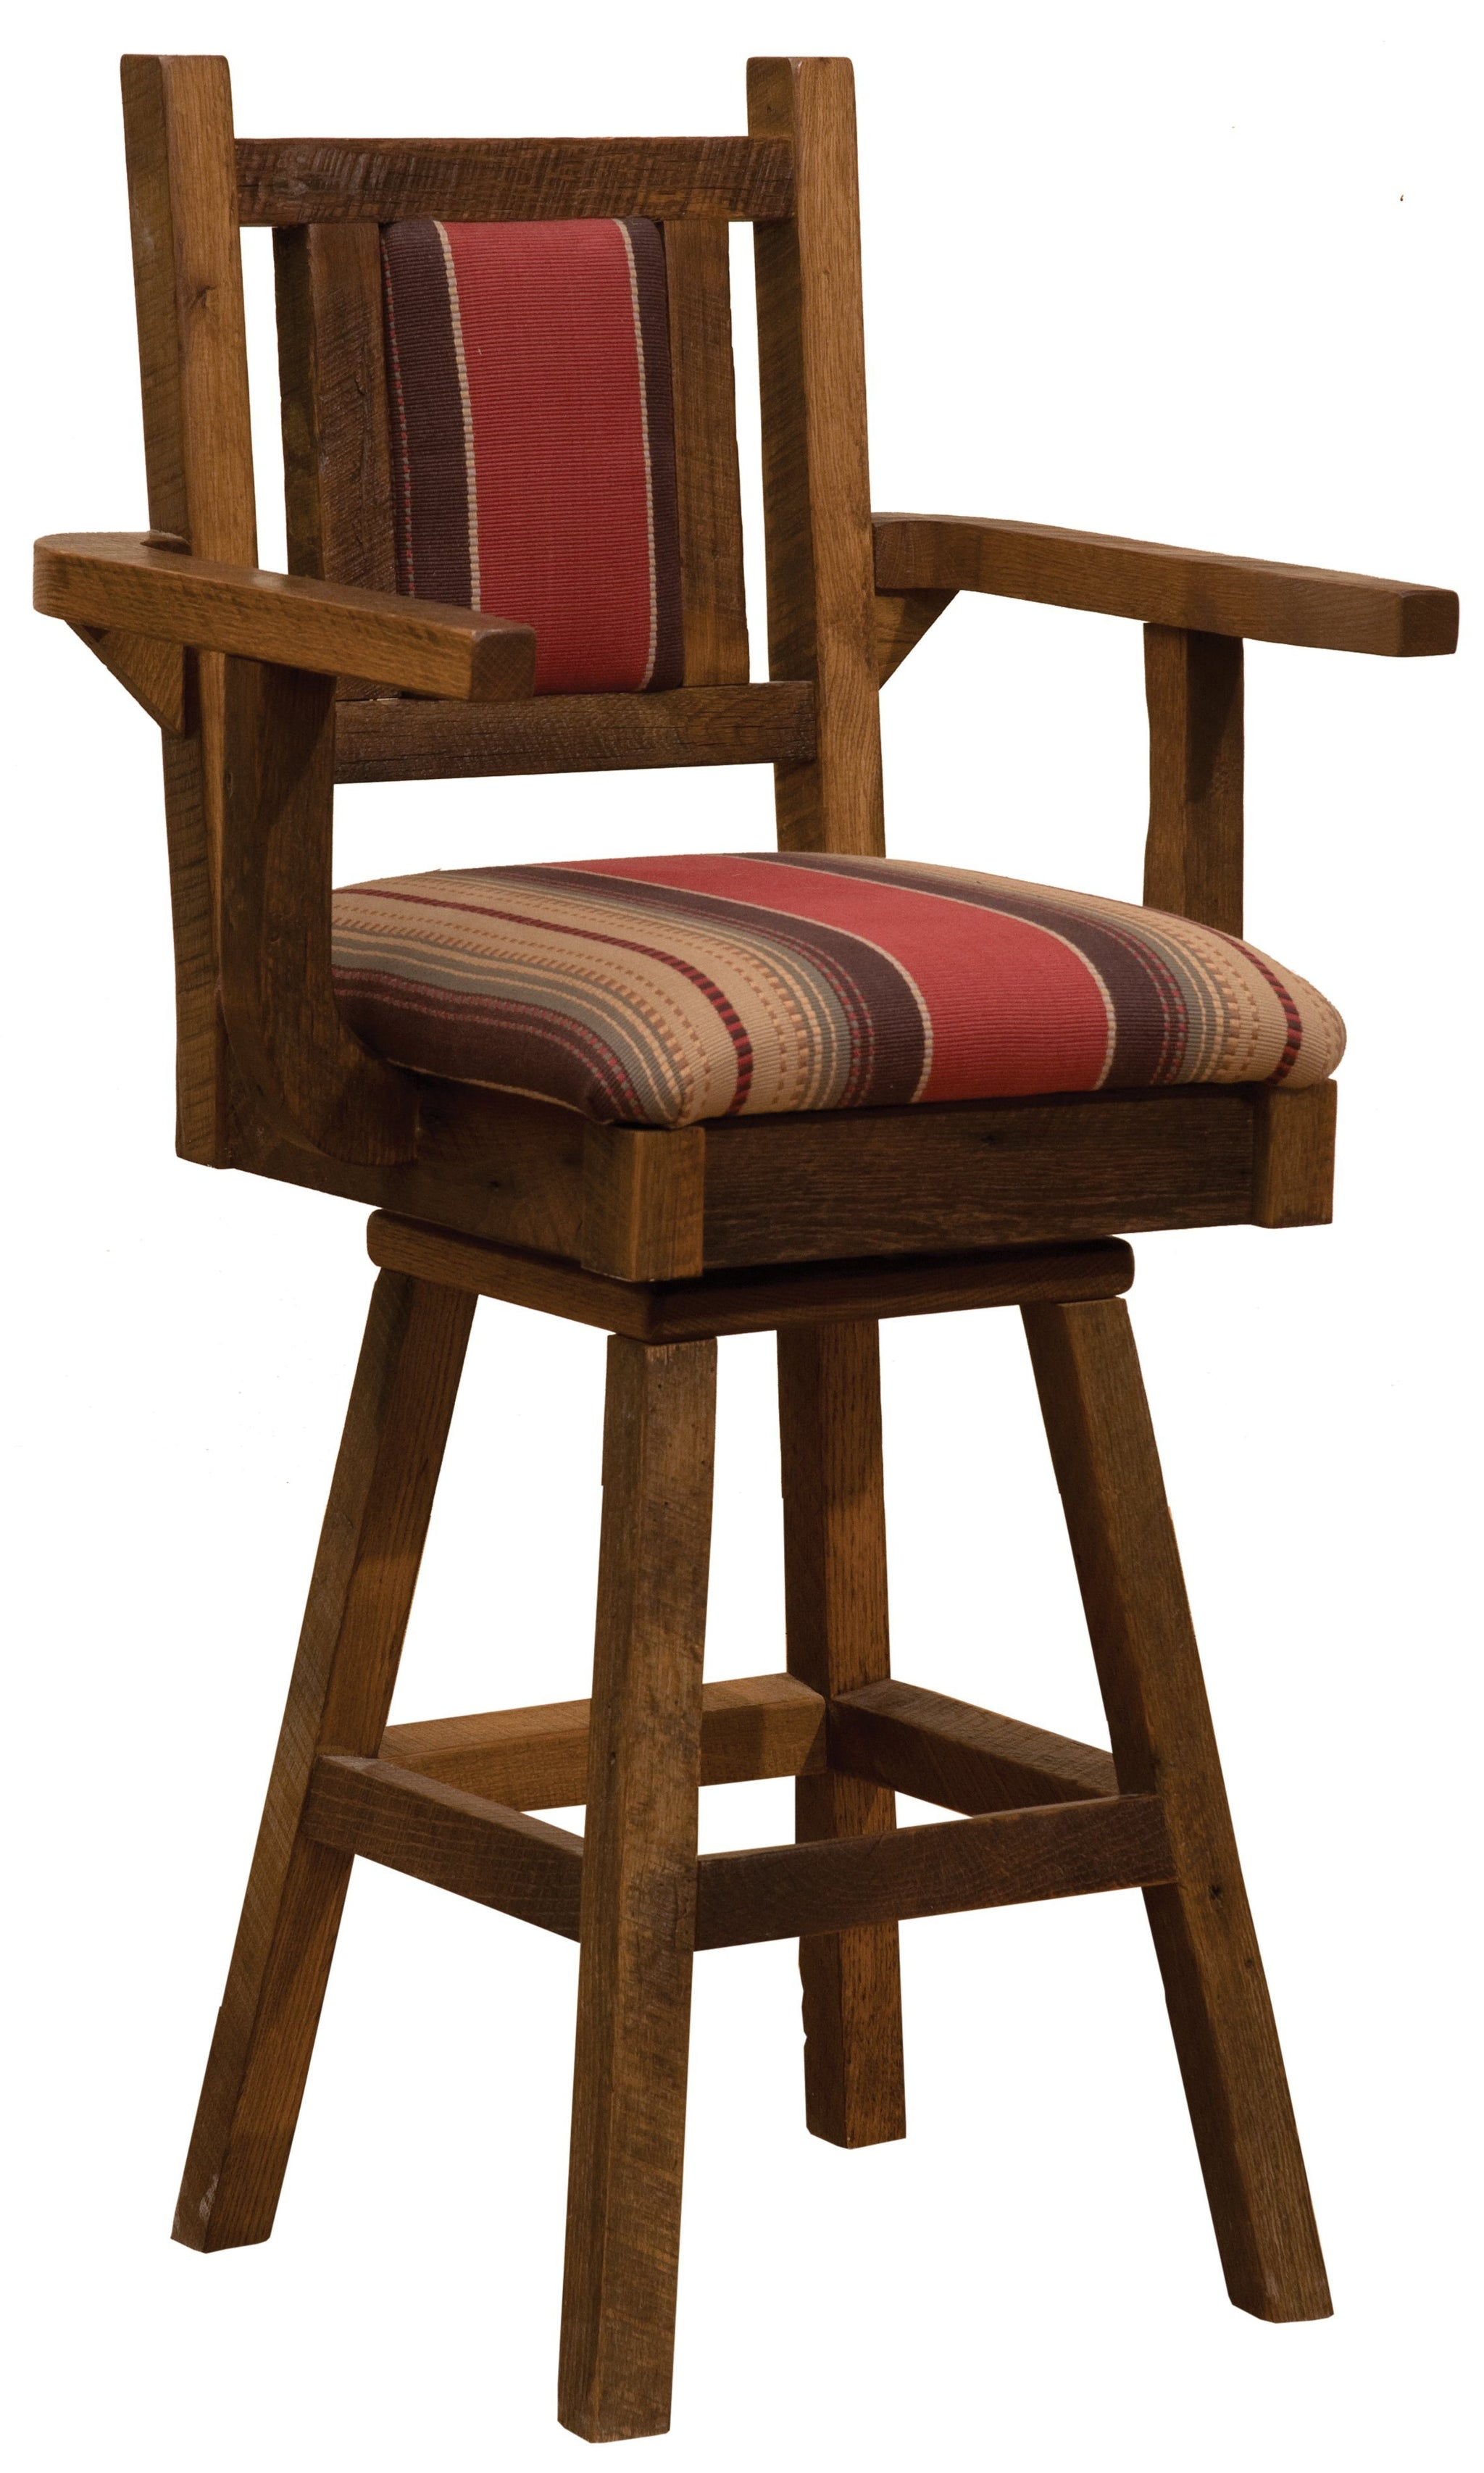 Picture of: Barnwood Swivel Upholstered Bar Stool With Back And Arms 30 Seat He